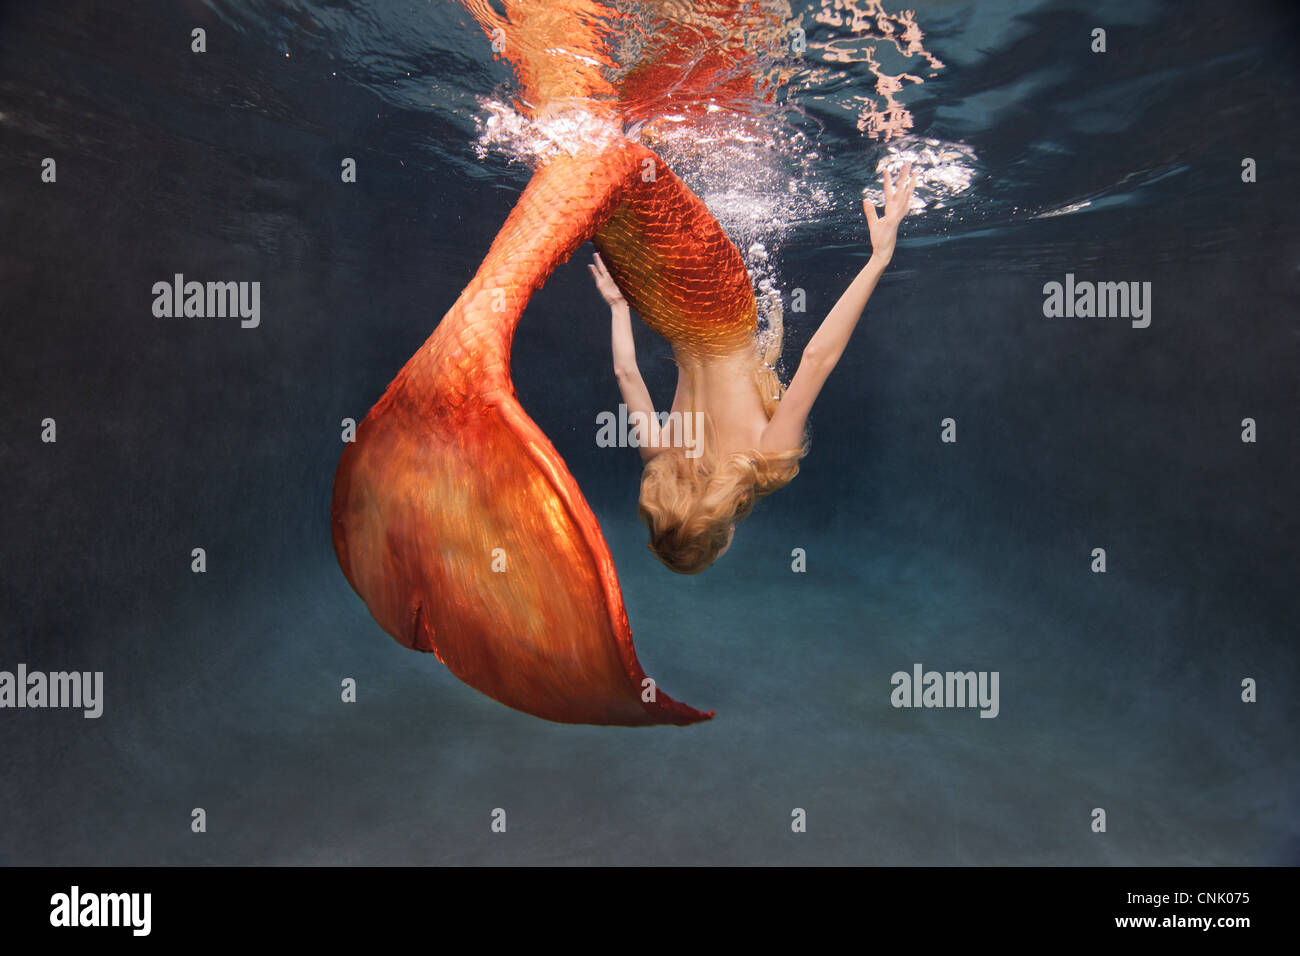 Mermaid doing an underwater flip at the water's surface - Stock Image